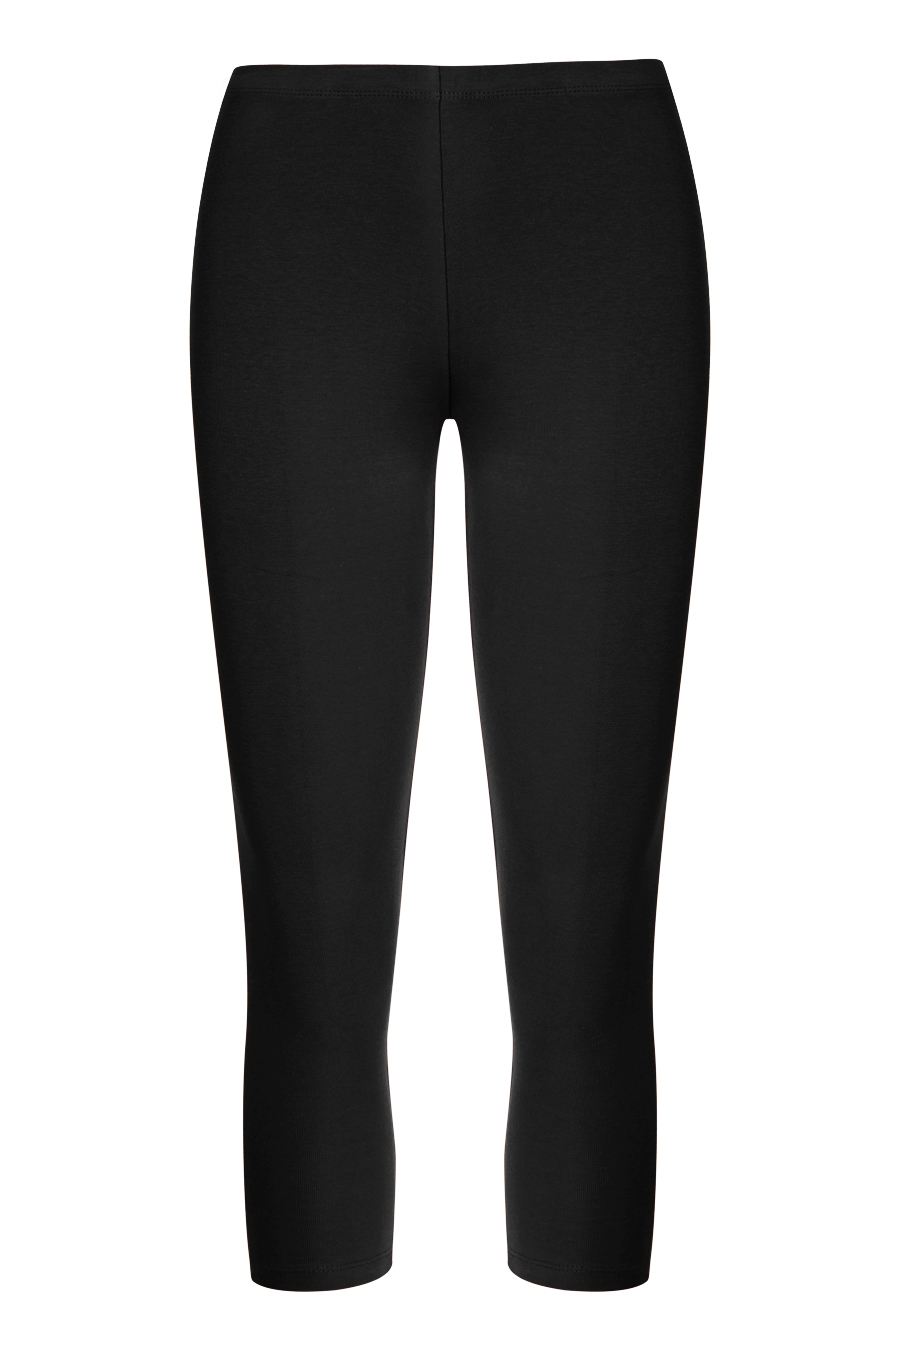 LEGGINGS LIGHT BLACK 1